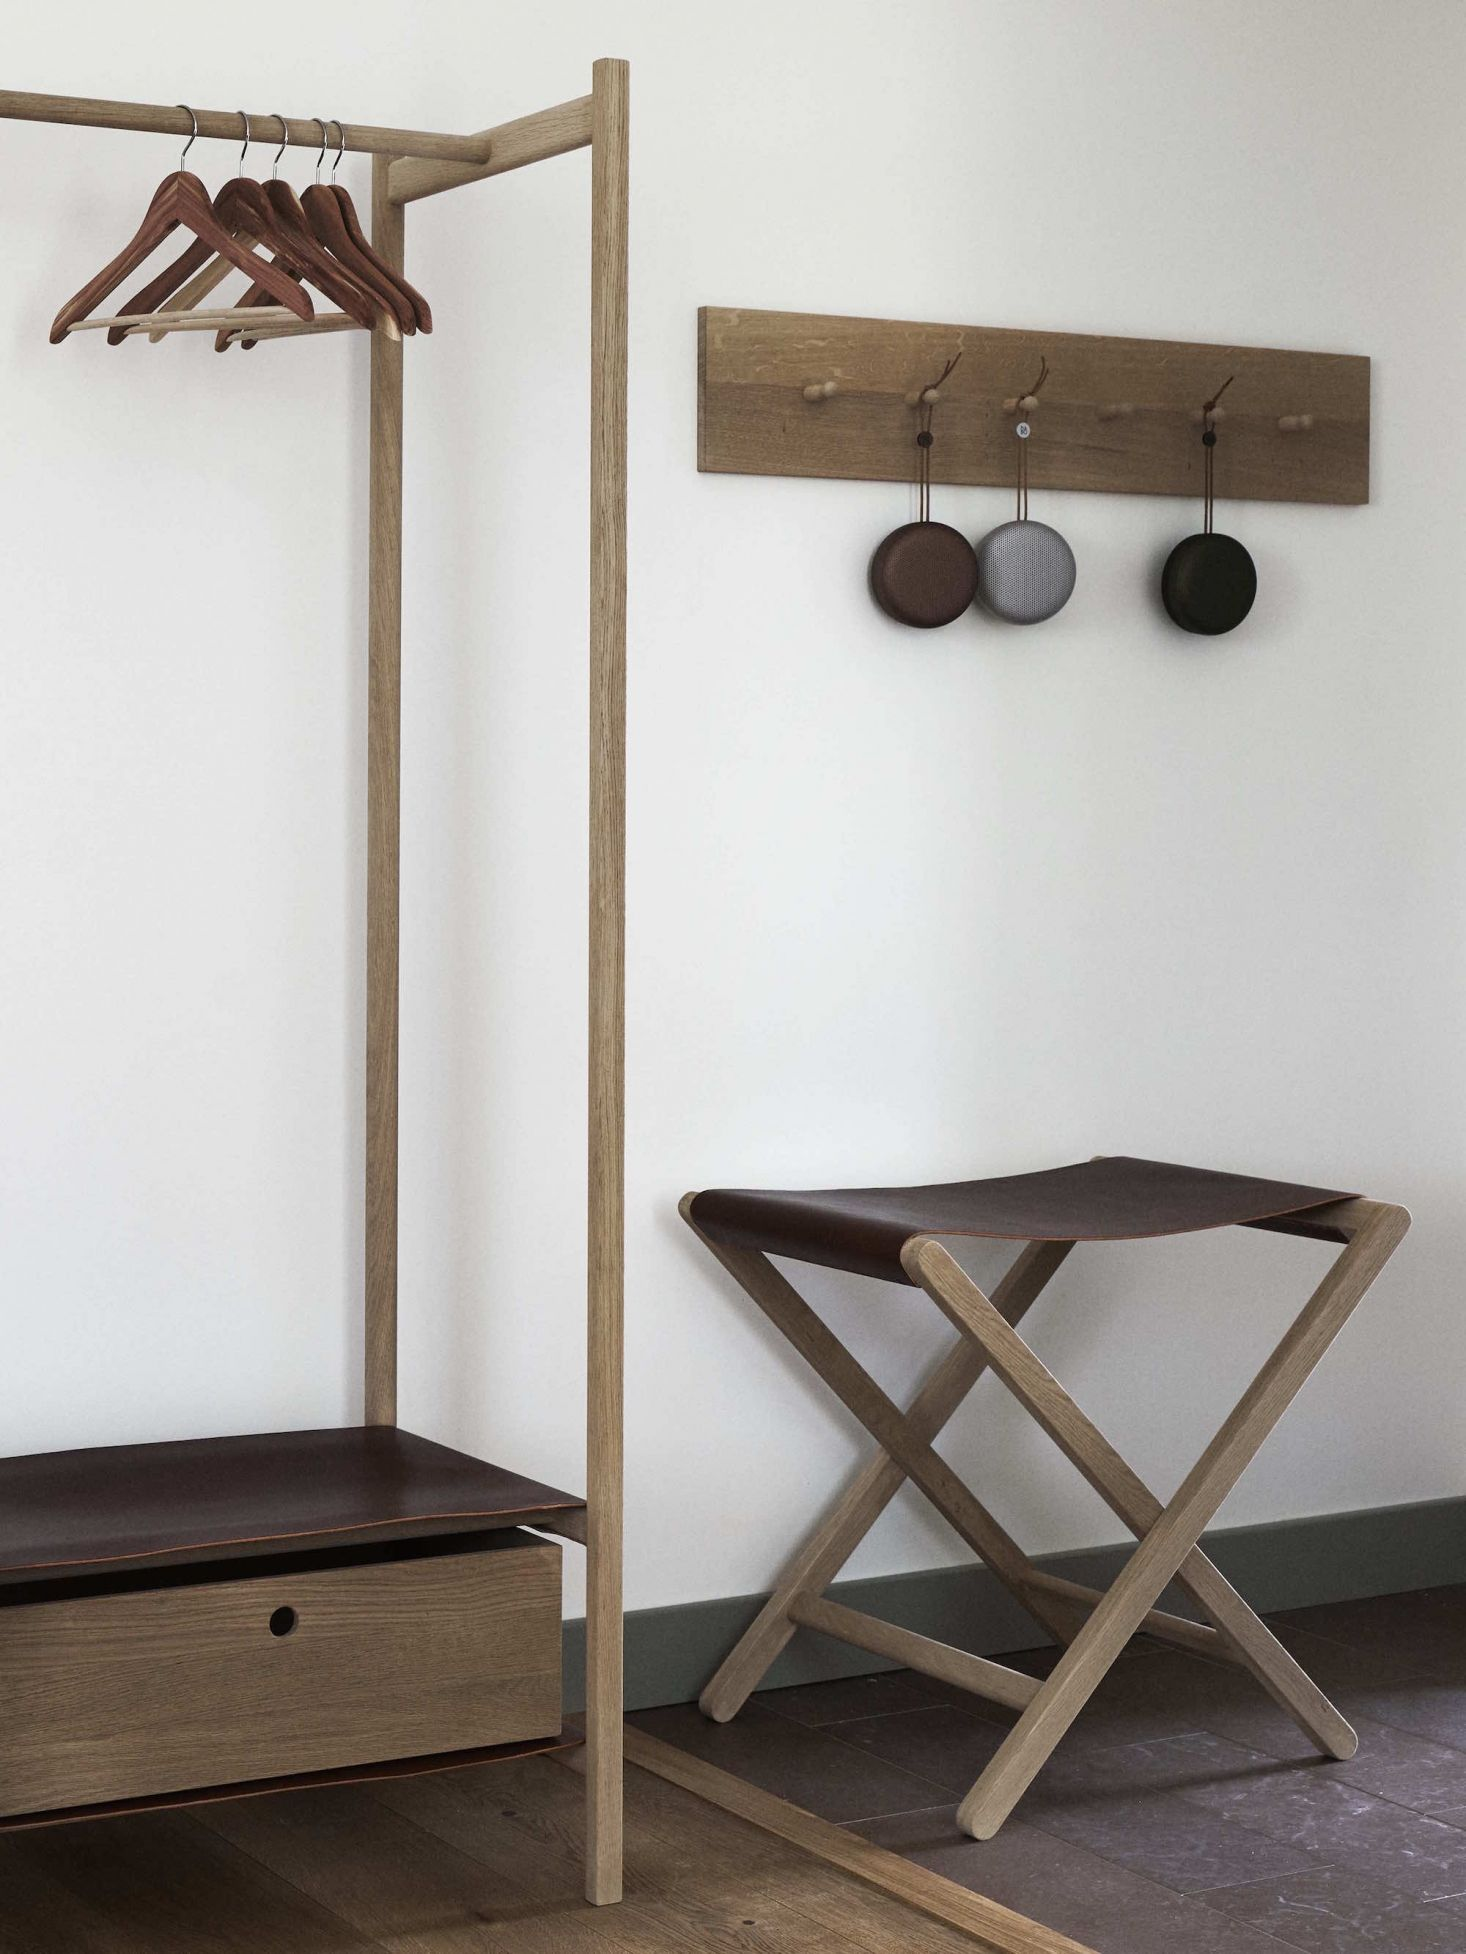 Hotel Guest Room Design: An Architect's Estate, Open For Business: Wanås Hotel In